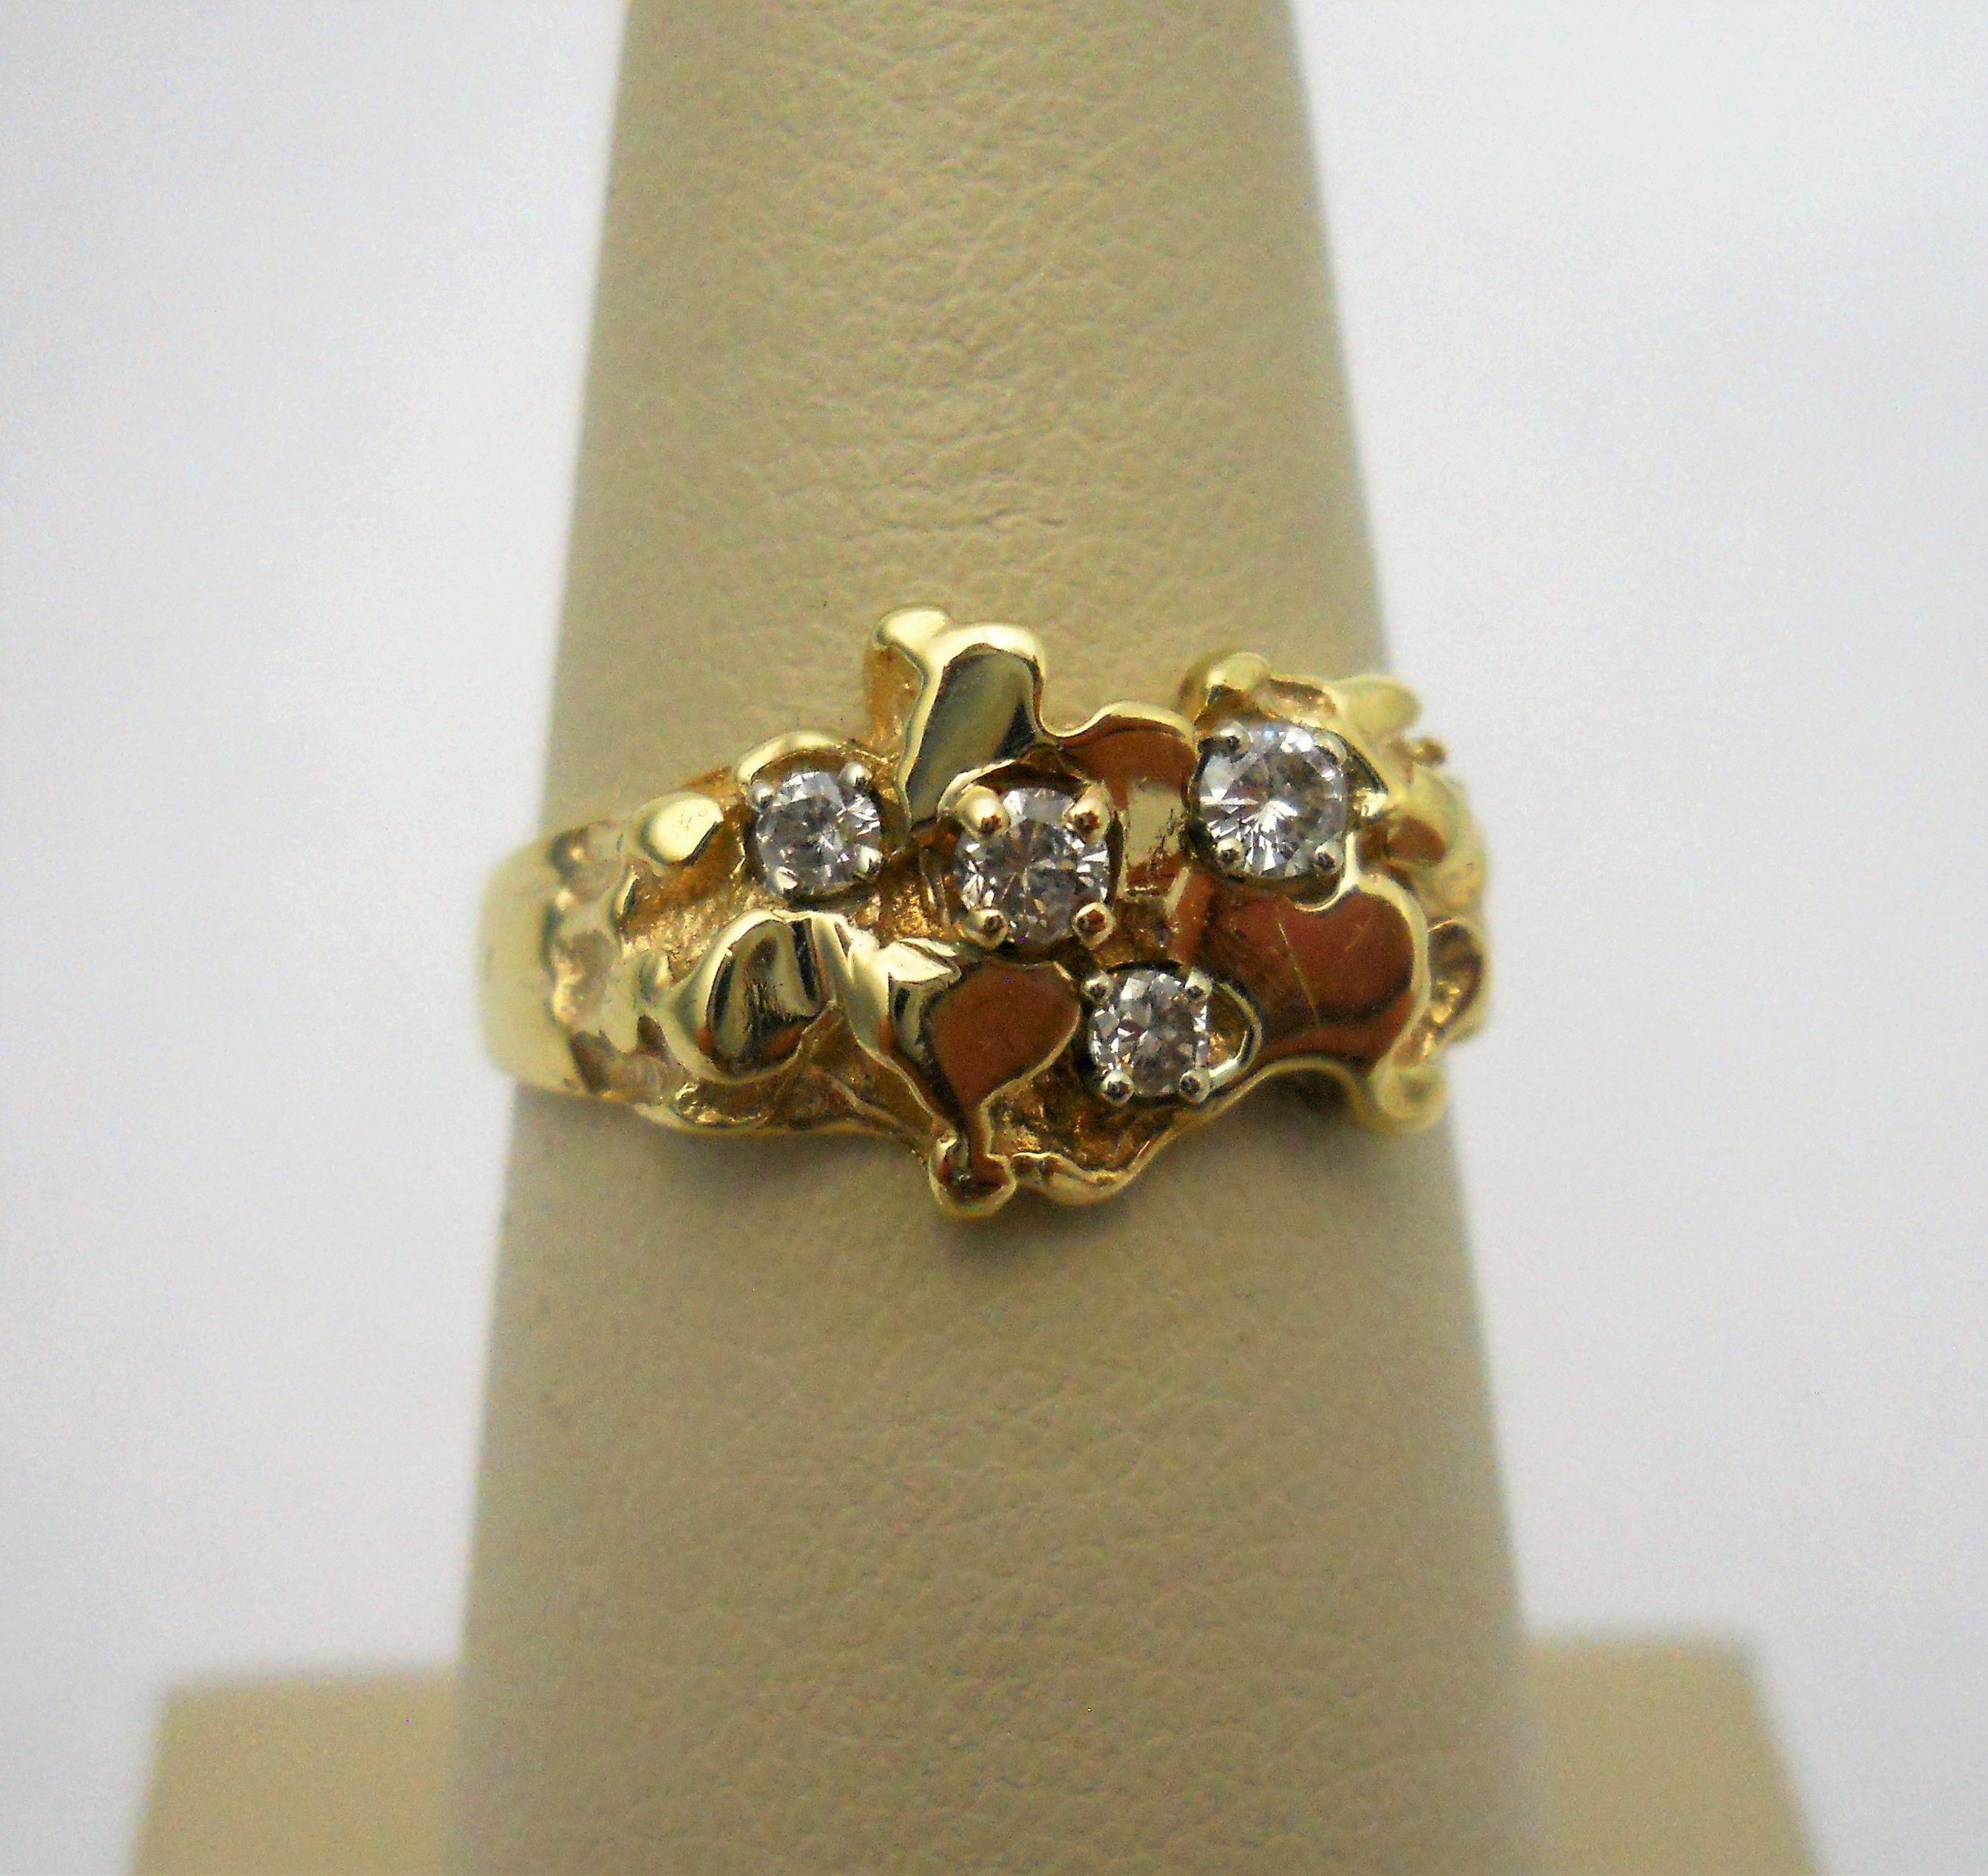 shop schmuckwerk rings feingold unique ring pure de wedding gold aus precious paar ya